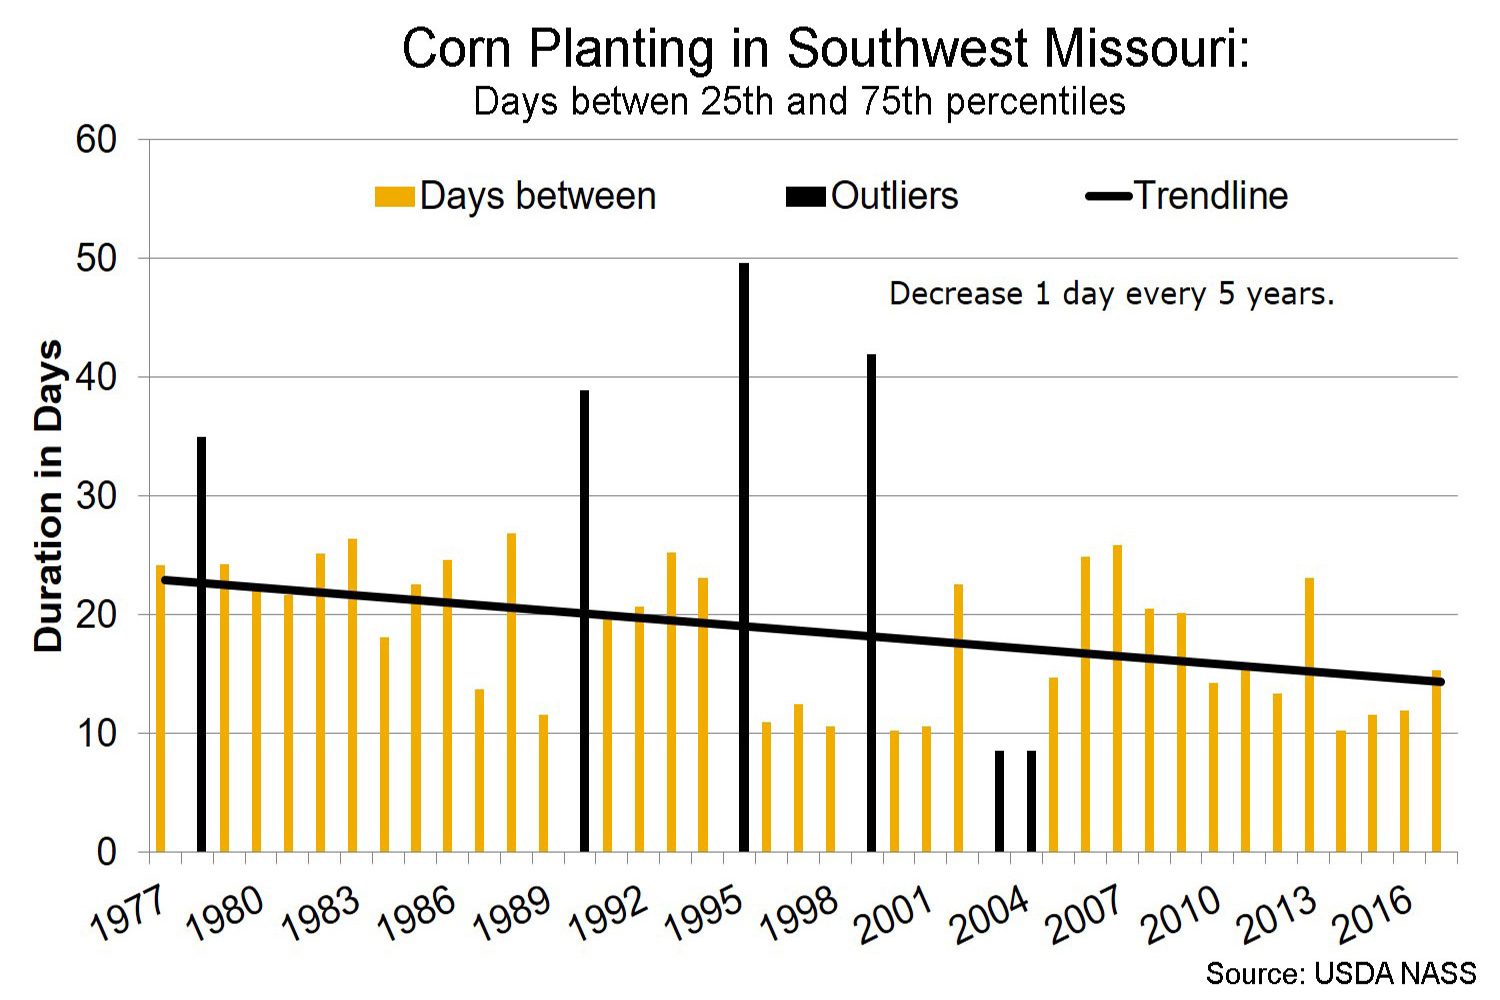 Corn planting in southwest Missouri days between 25th and 75th percentiles chart